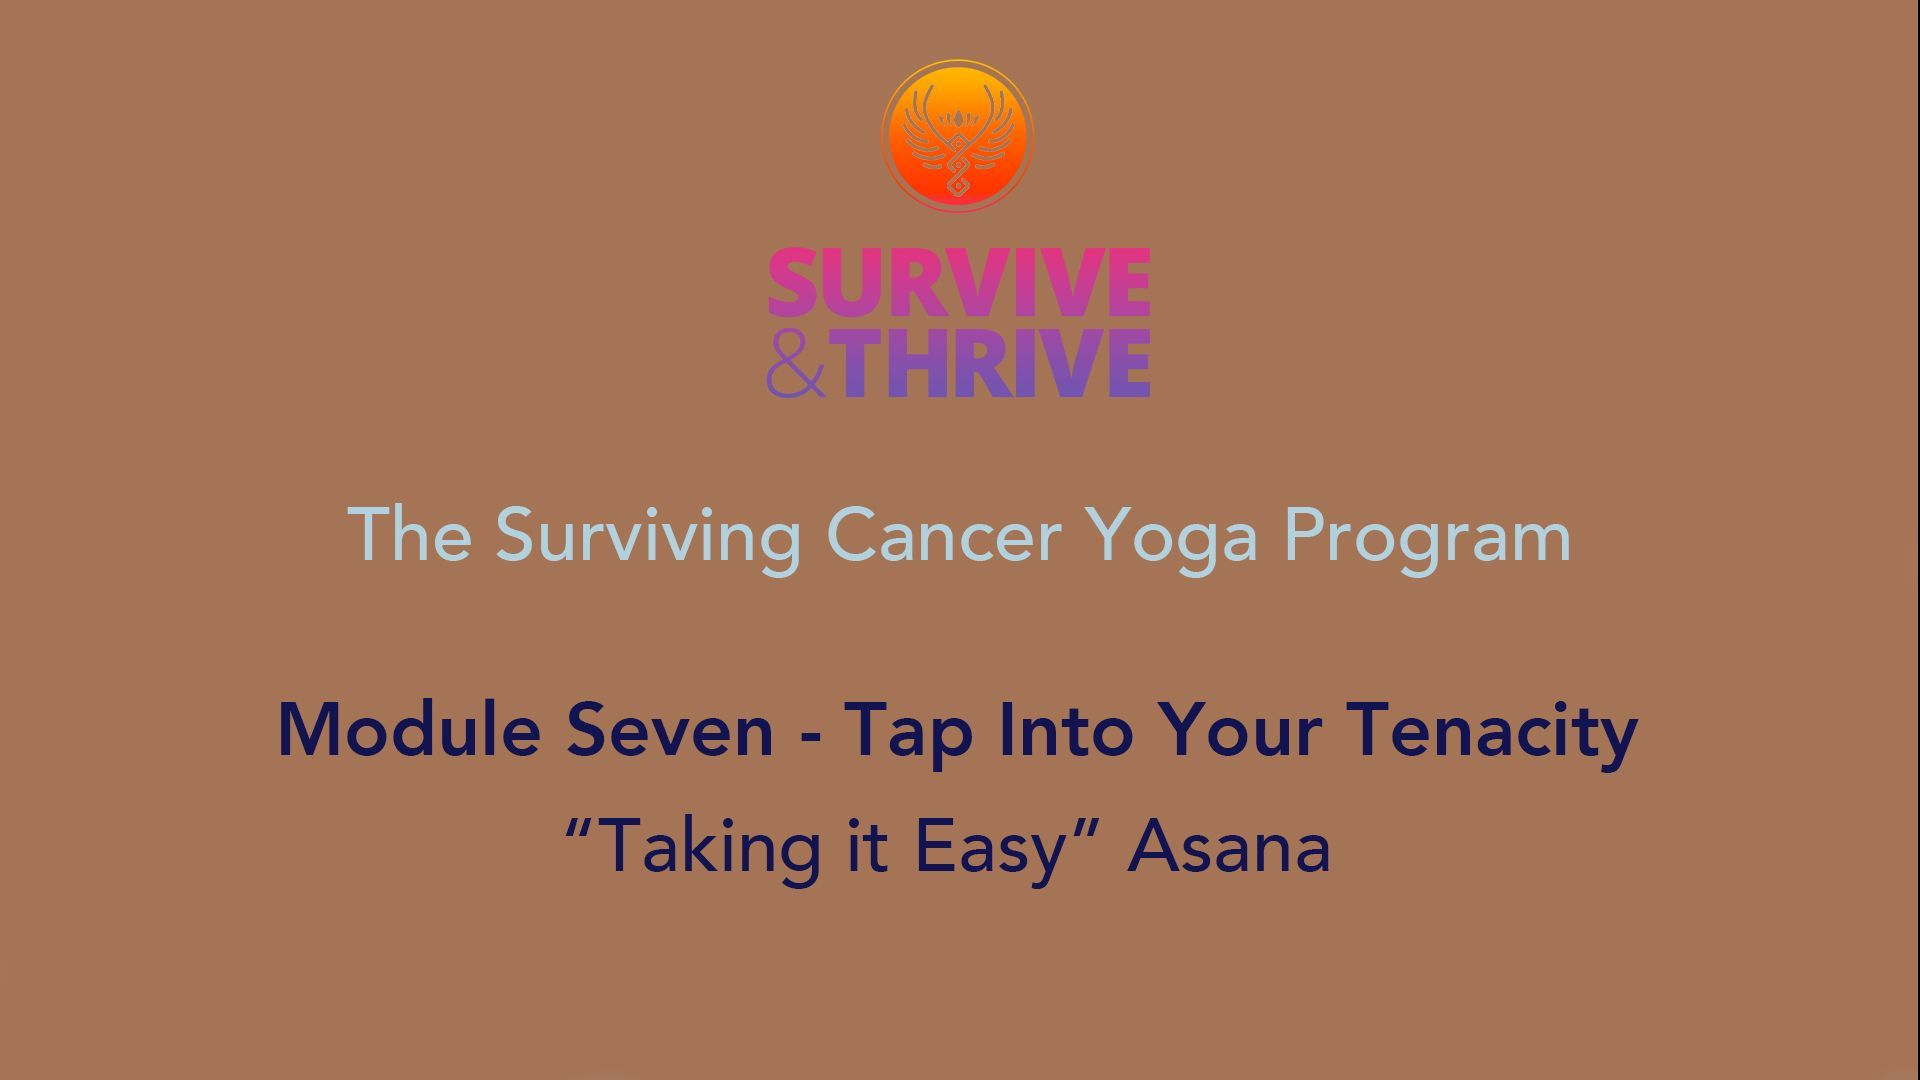 SURVIVE AND THRIVE | MODULE 7 - TAP INTO YOUR TENACITY | TAKING IT EASY ASANA